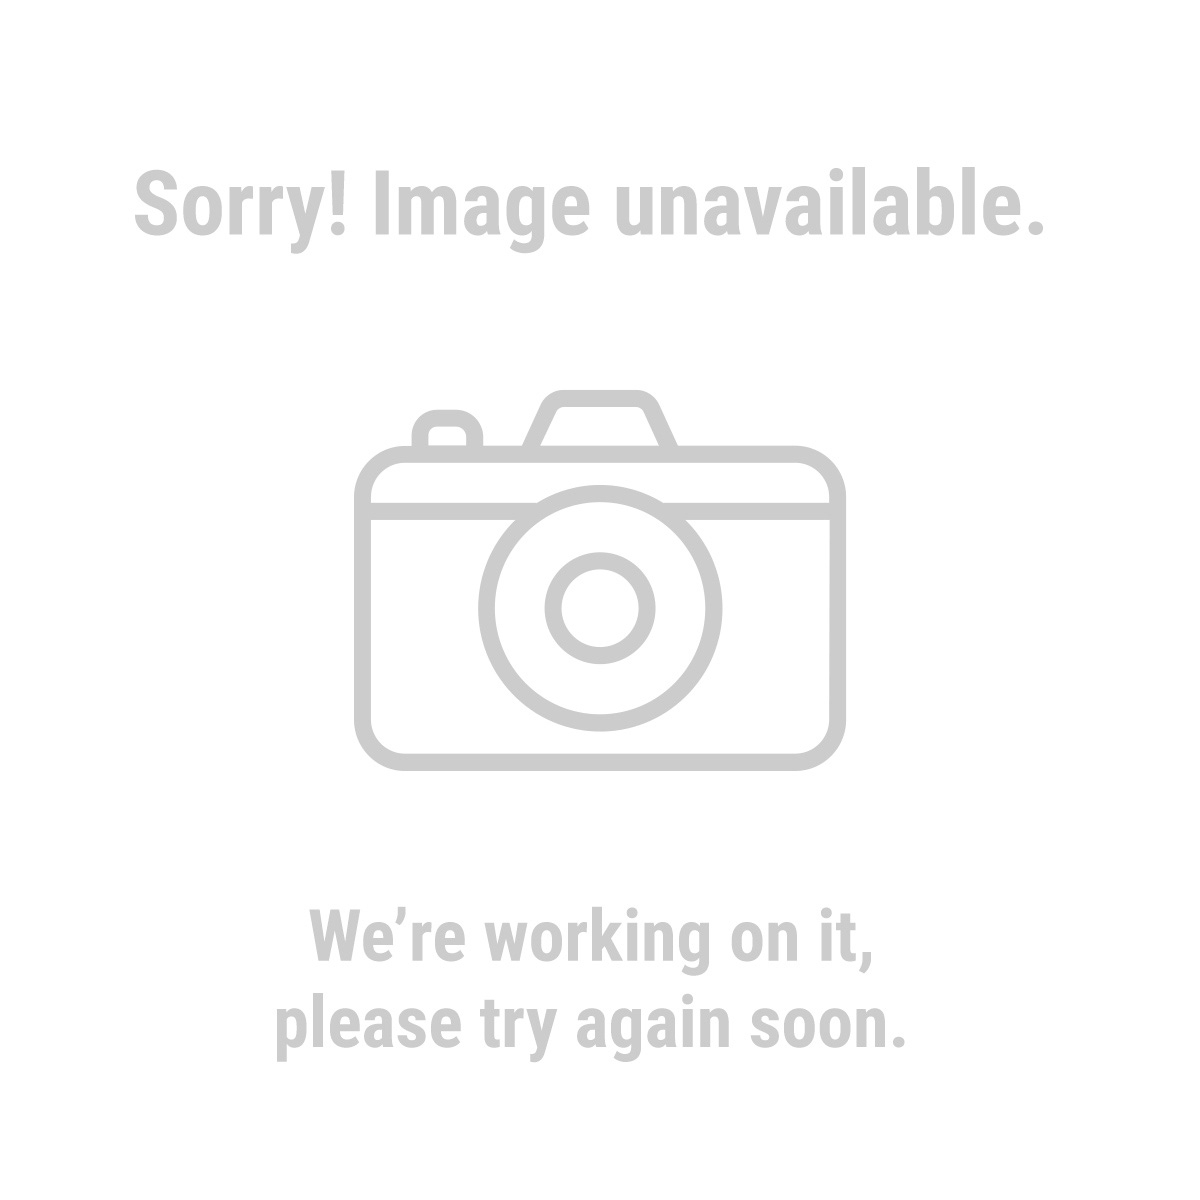 Fuel injection pump tester master fuel injection pressure test kit sciox Gallery